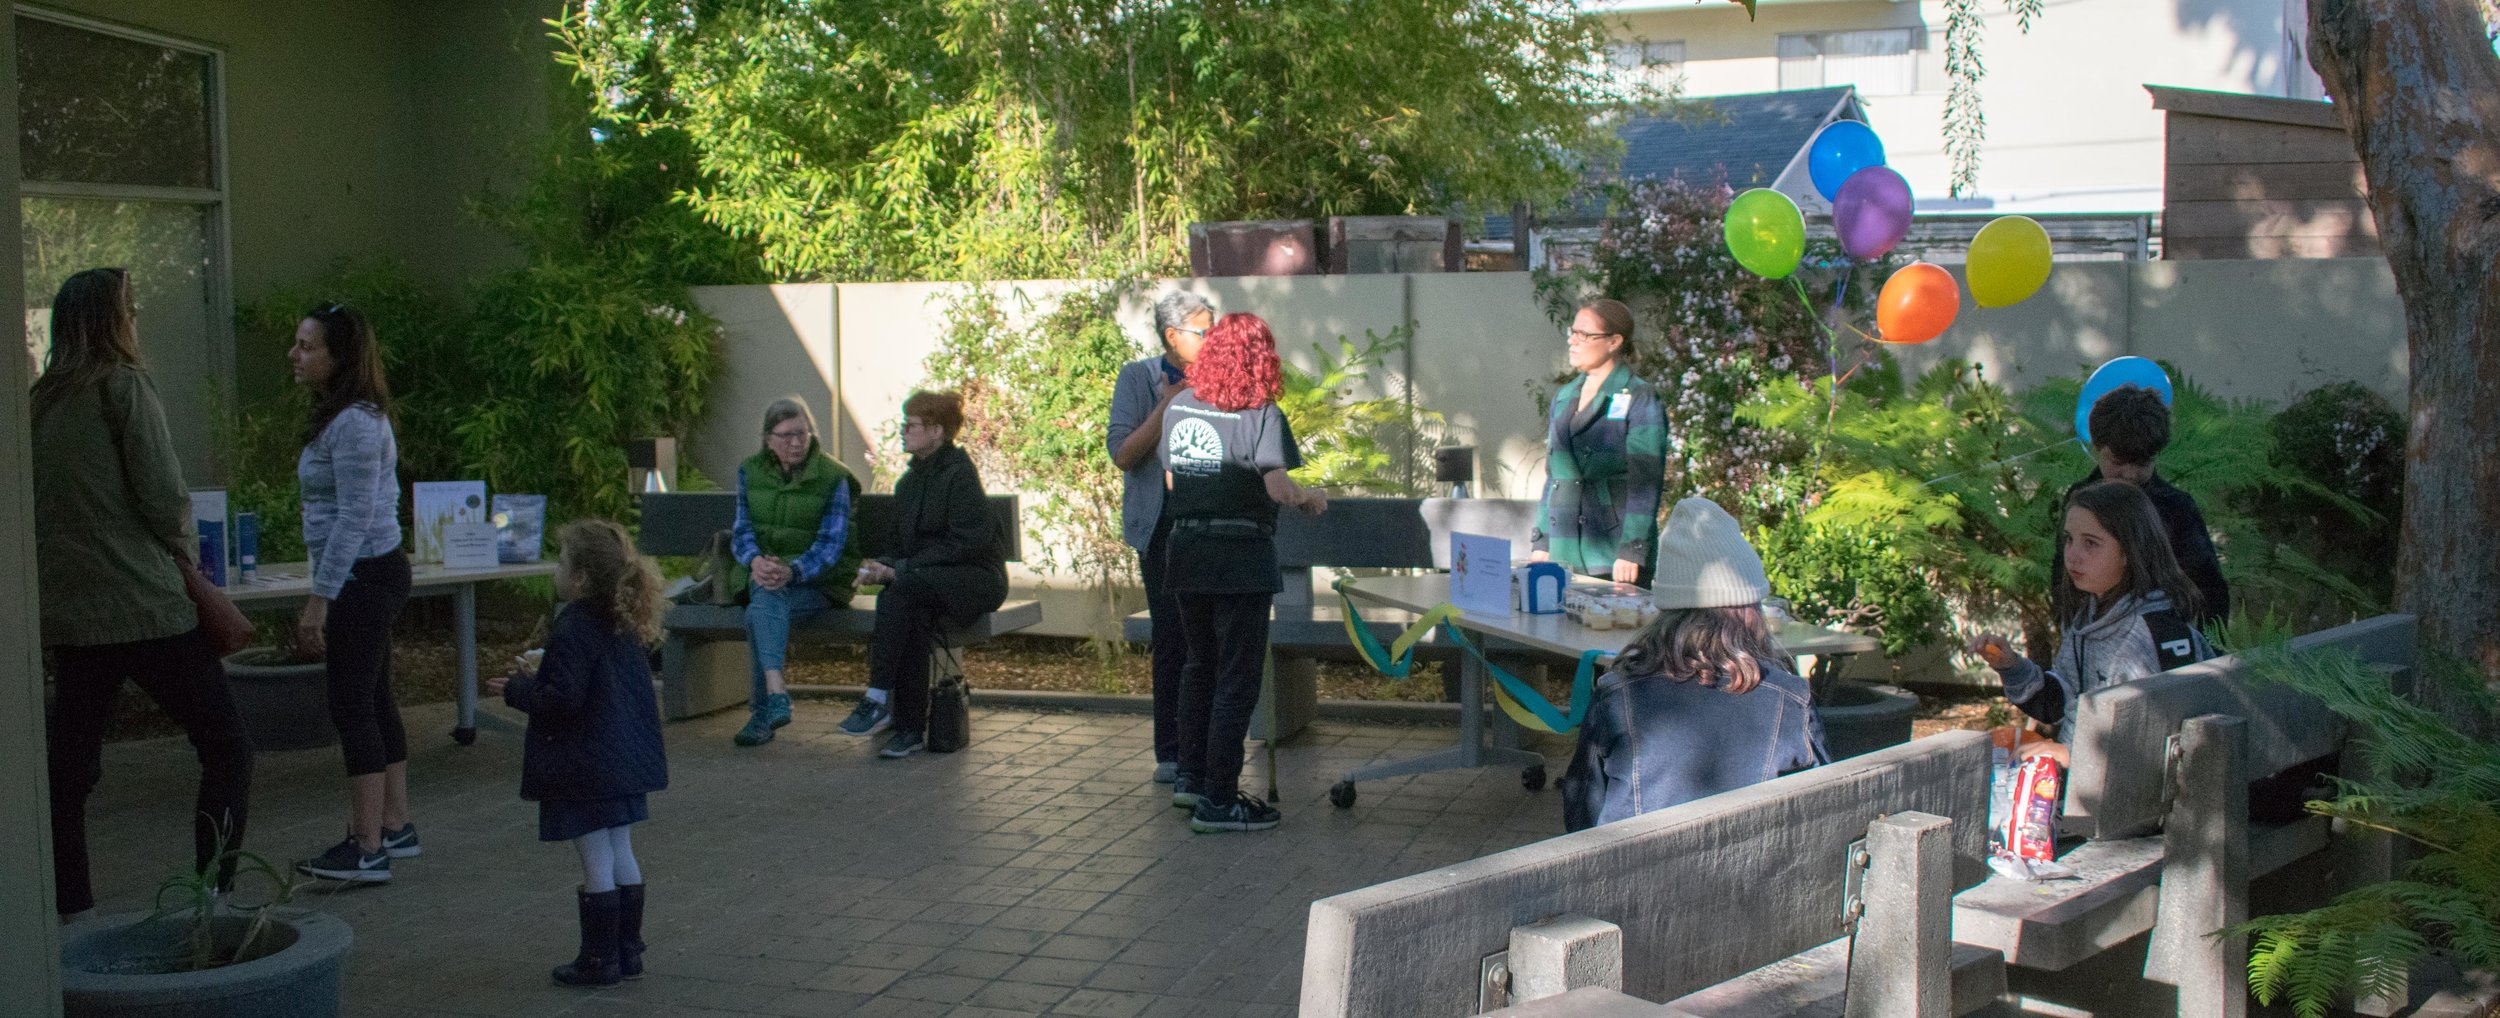 During the 58th anniversary of the Montana Avenue Branch of the Santa Monica Public Library system, patrons gather at an event held in the patio of the library in Santa Monica, California. The library helps the community around the area with many programs and resources that are available for free. March 1, 2018. (Photo by: Ethan Lauren/Corsair Staff)